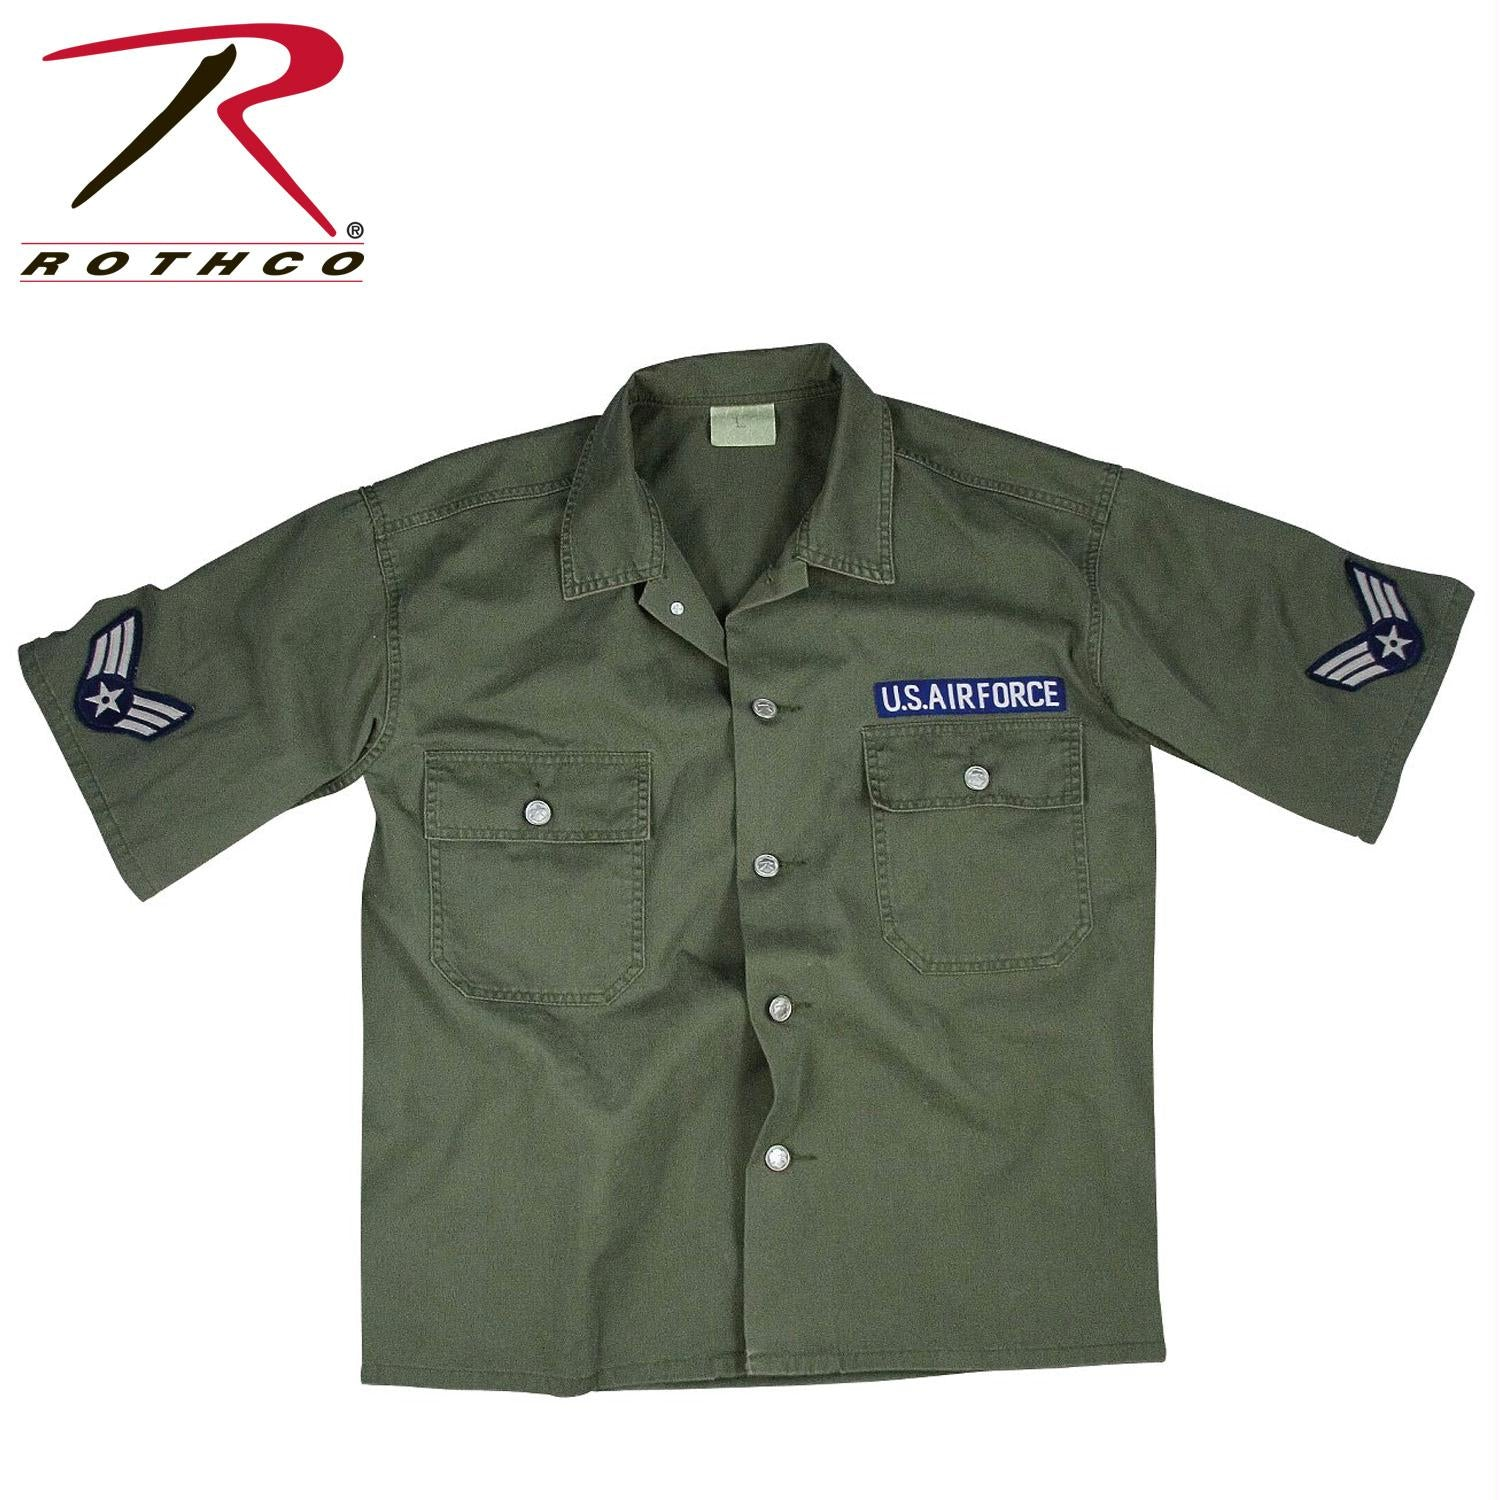 Rothco Vintage Army Air Force Short Sleeve BDU Shirt - XS